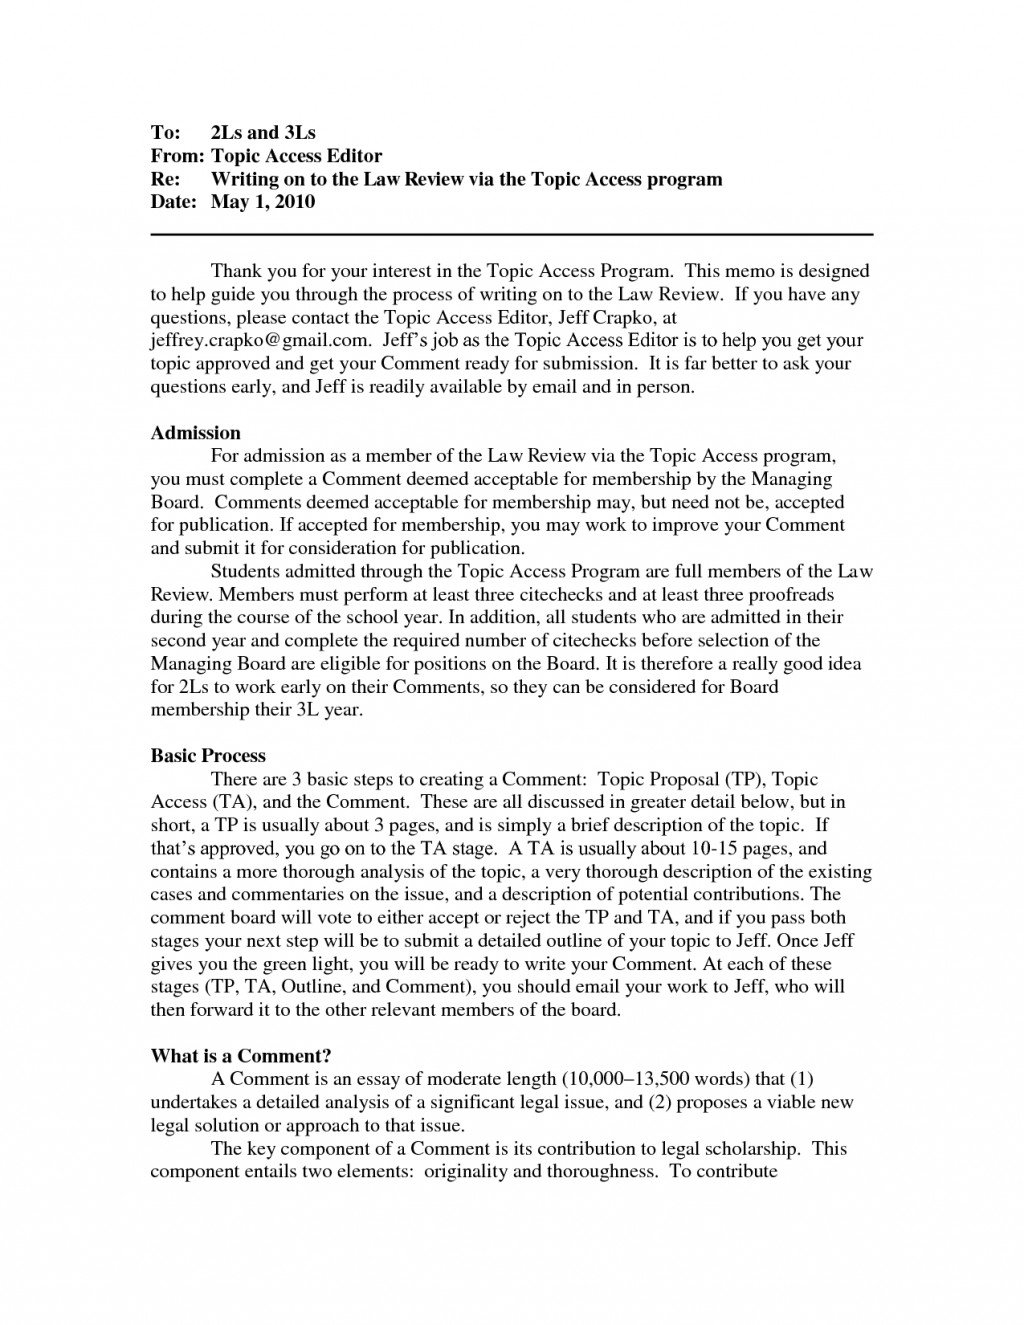 014 Research Paper 6inseuvjes How To Write Topic Proposal Staggering A For Example Writing Large